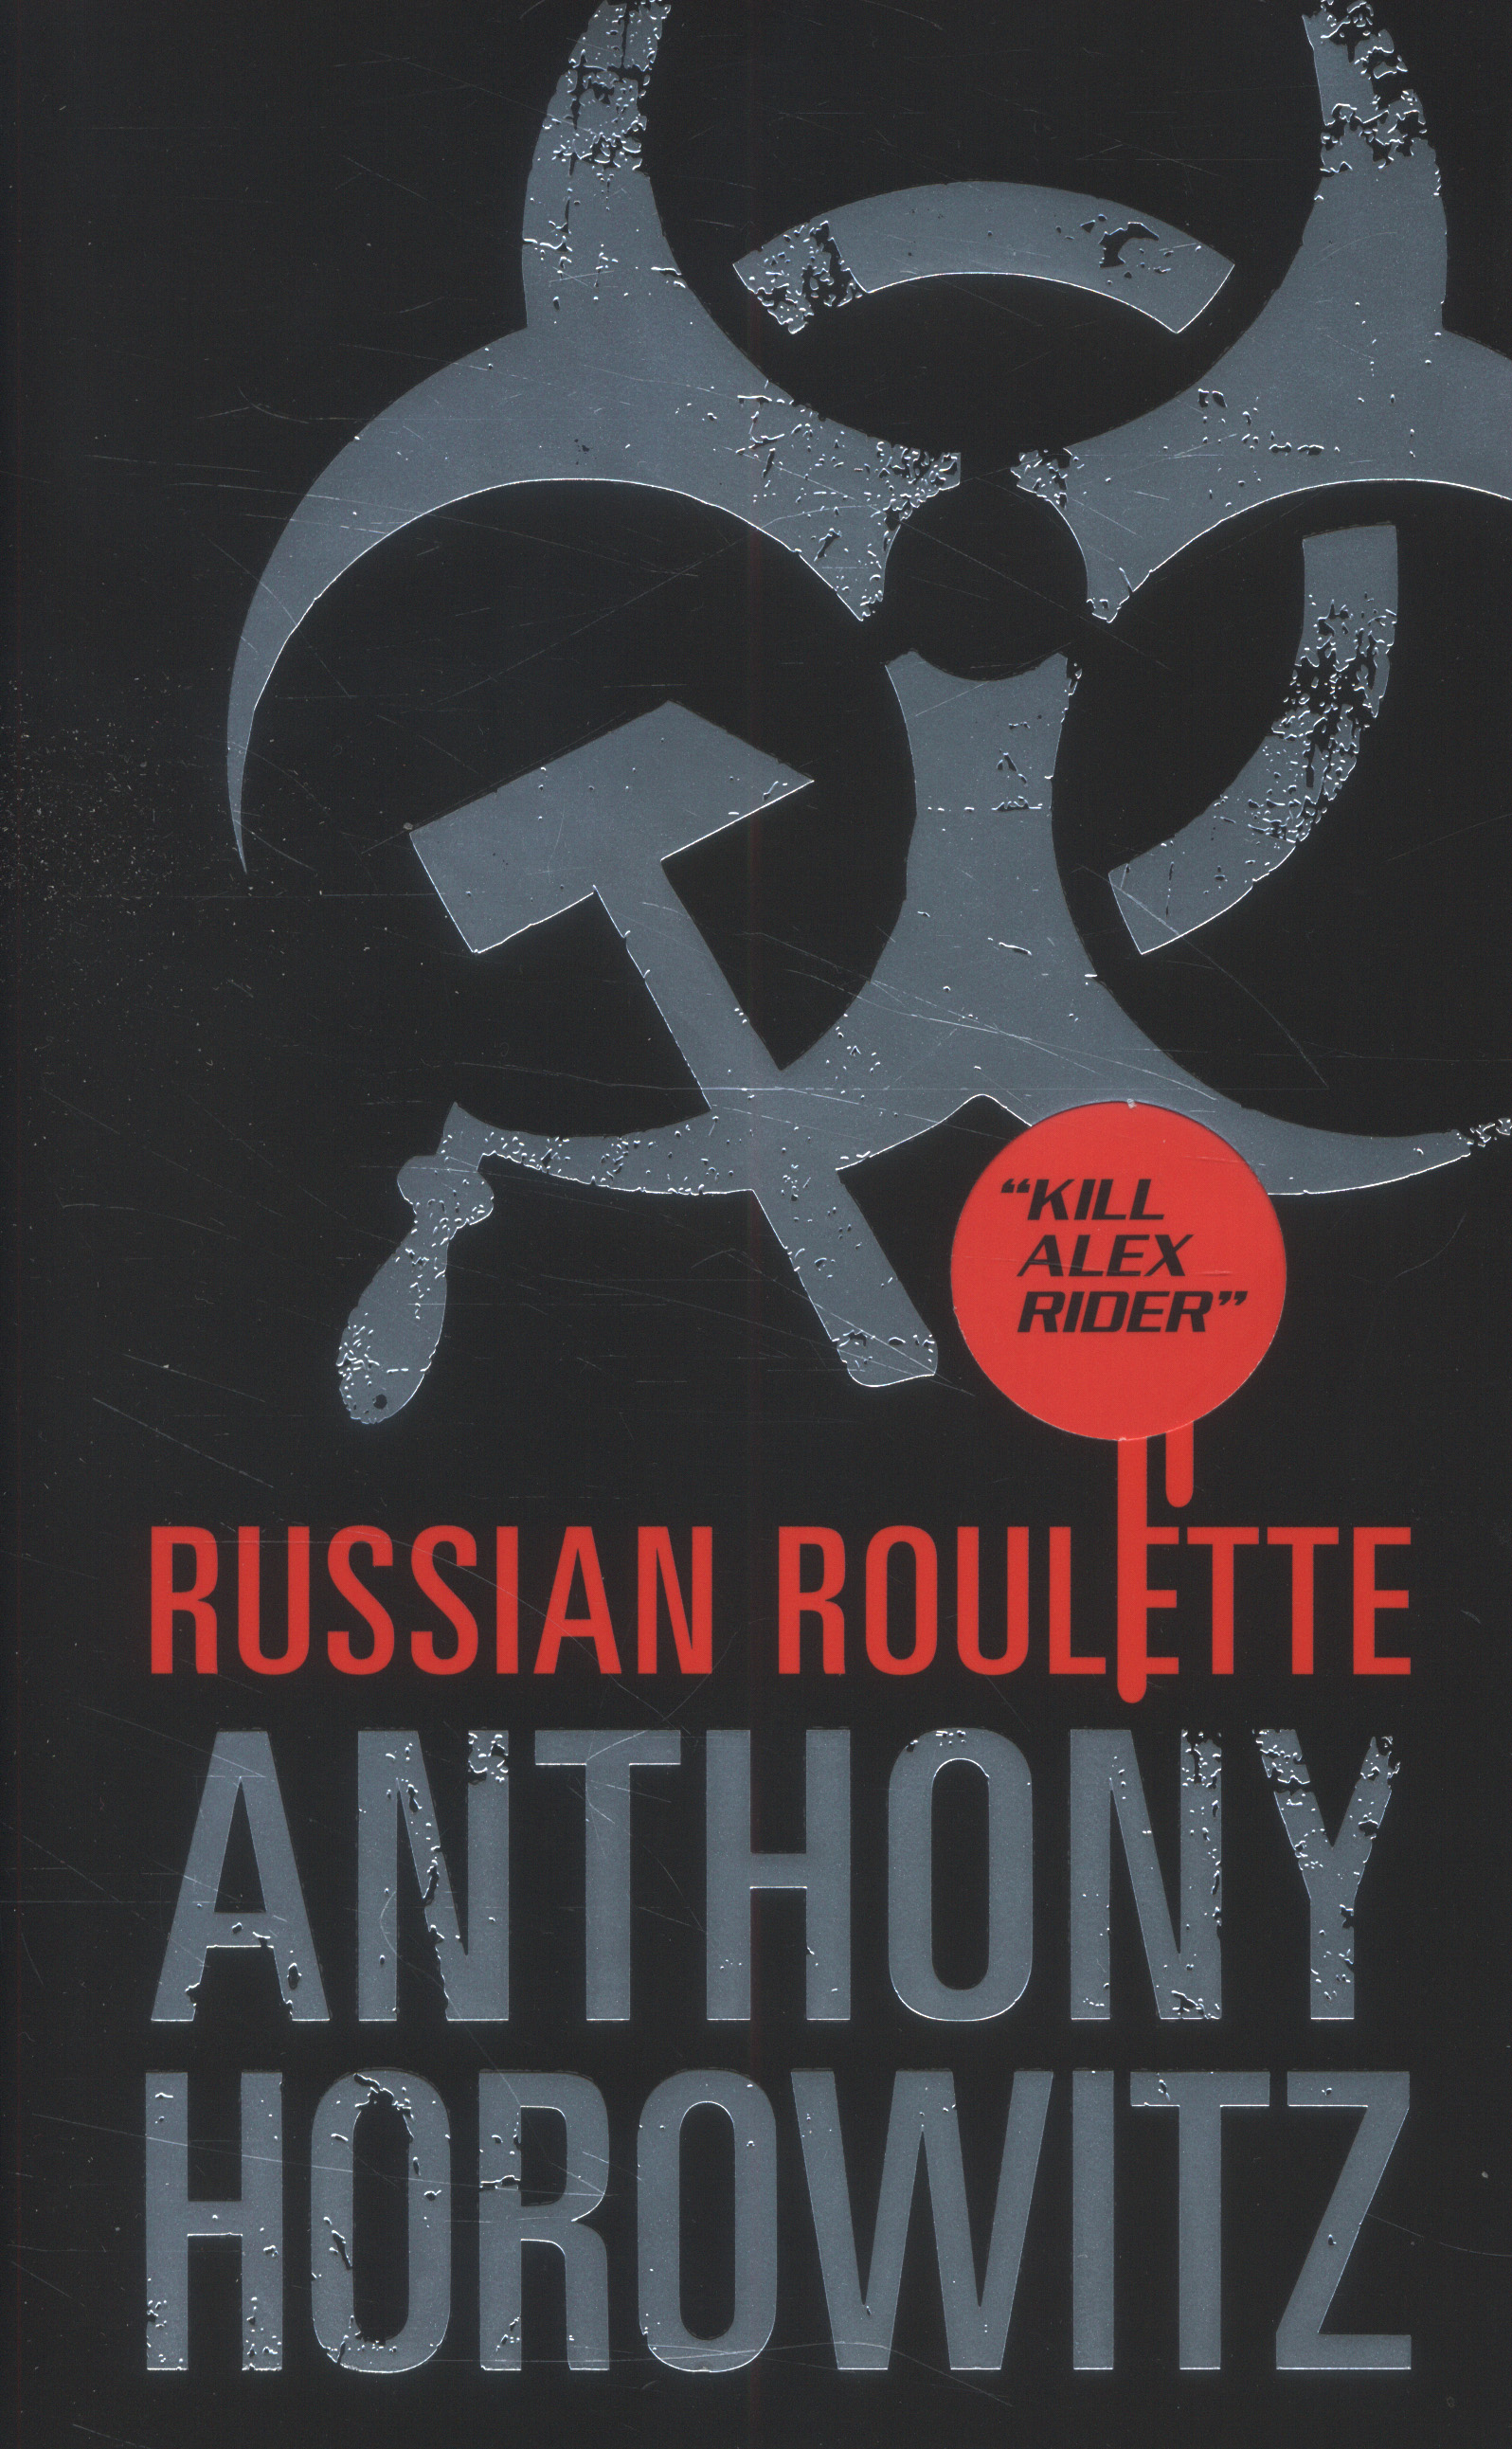 Russian roulette anthony horowitz wiki